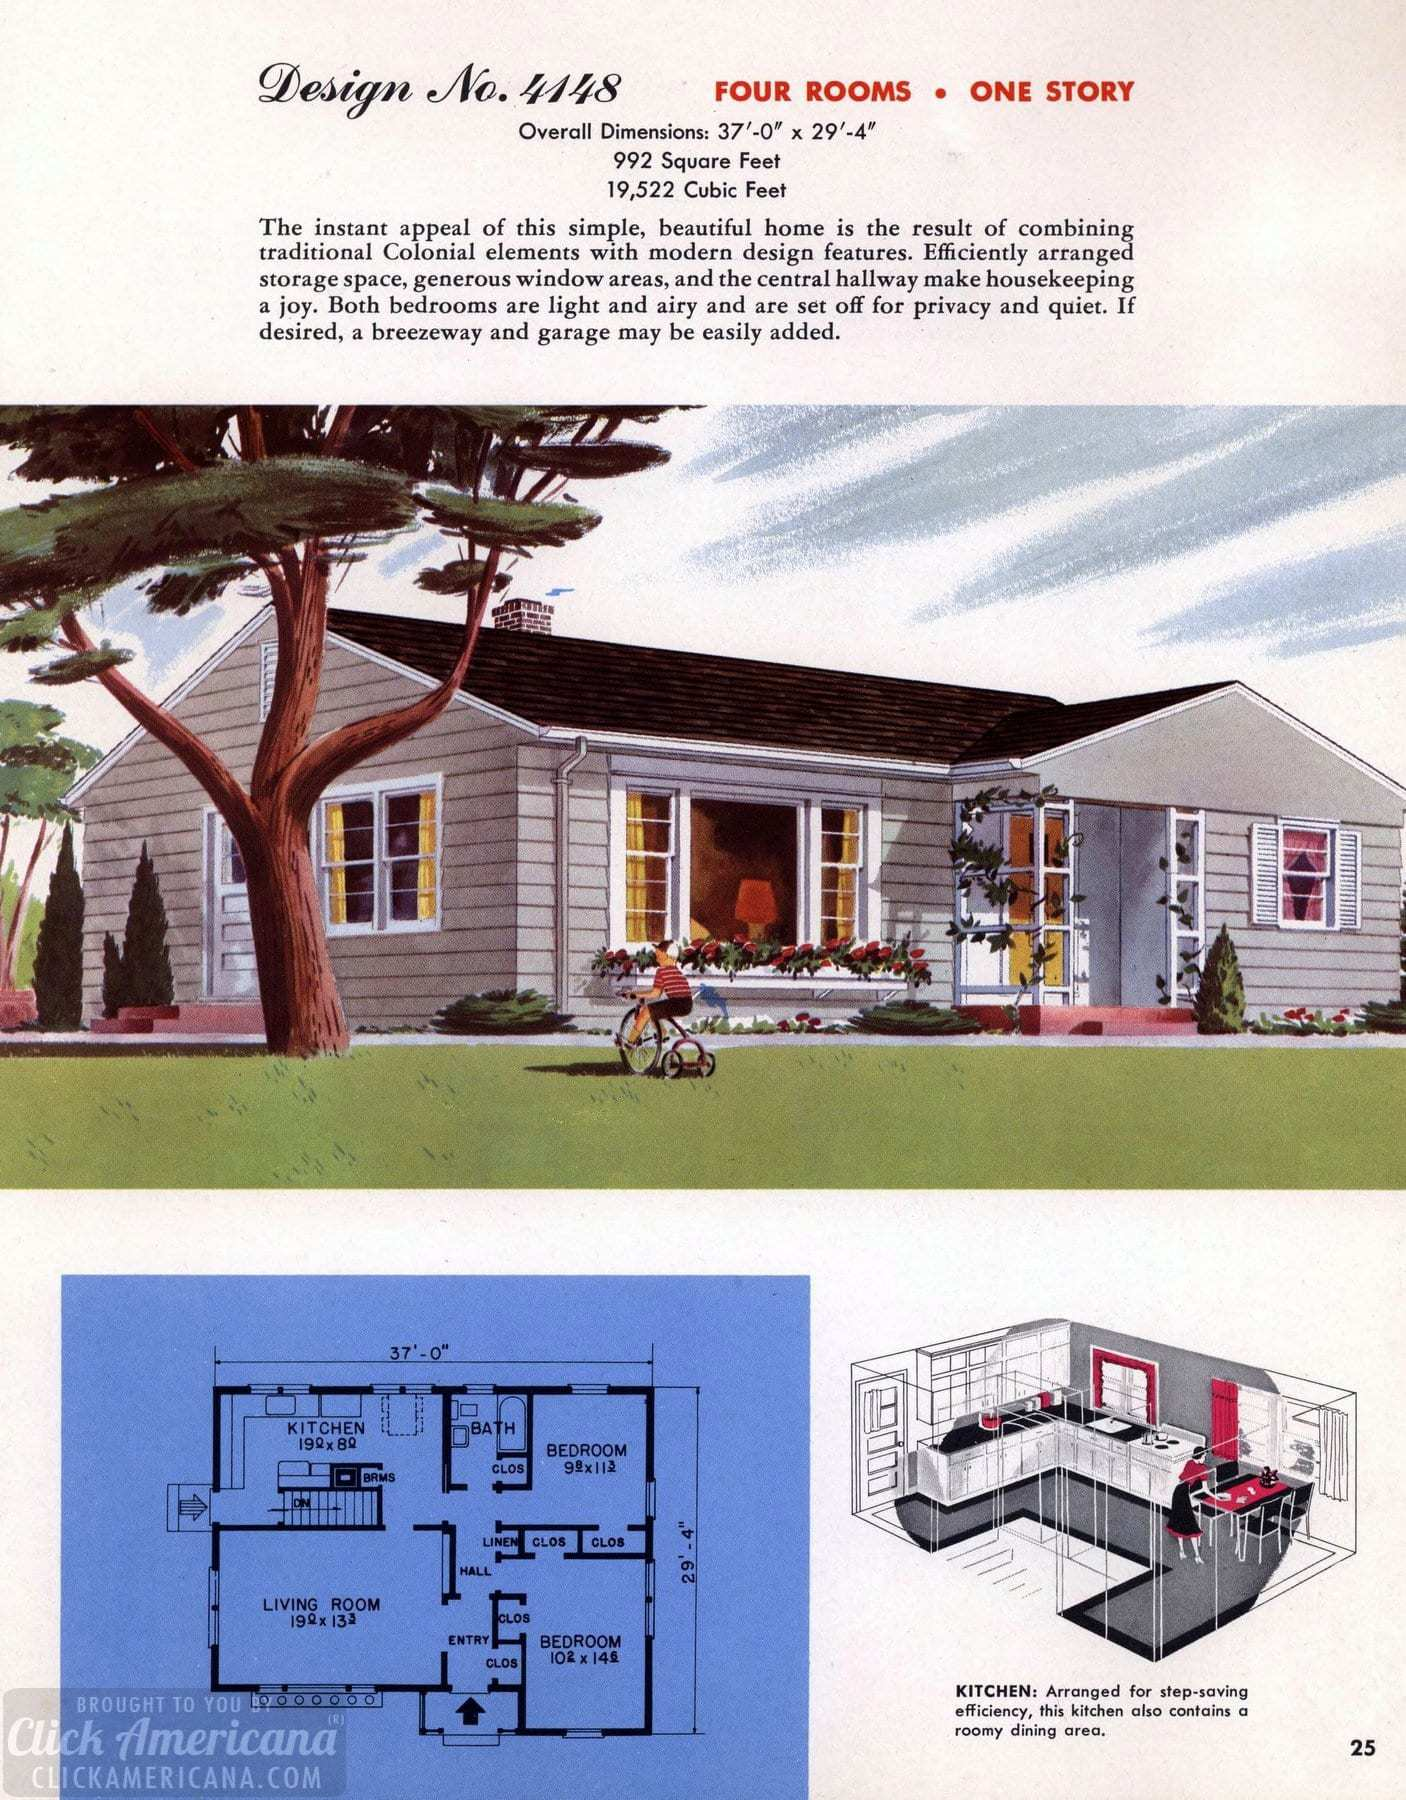 See 130 vintage 50s house plans used to build millions of mid century homes that we still live in today 50shomes fifties 1950s floorplans